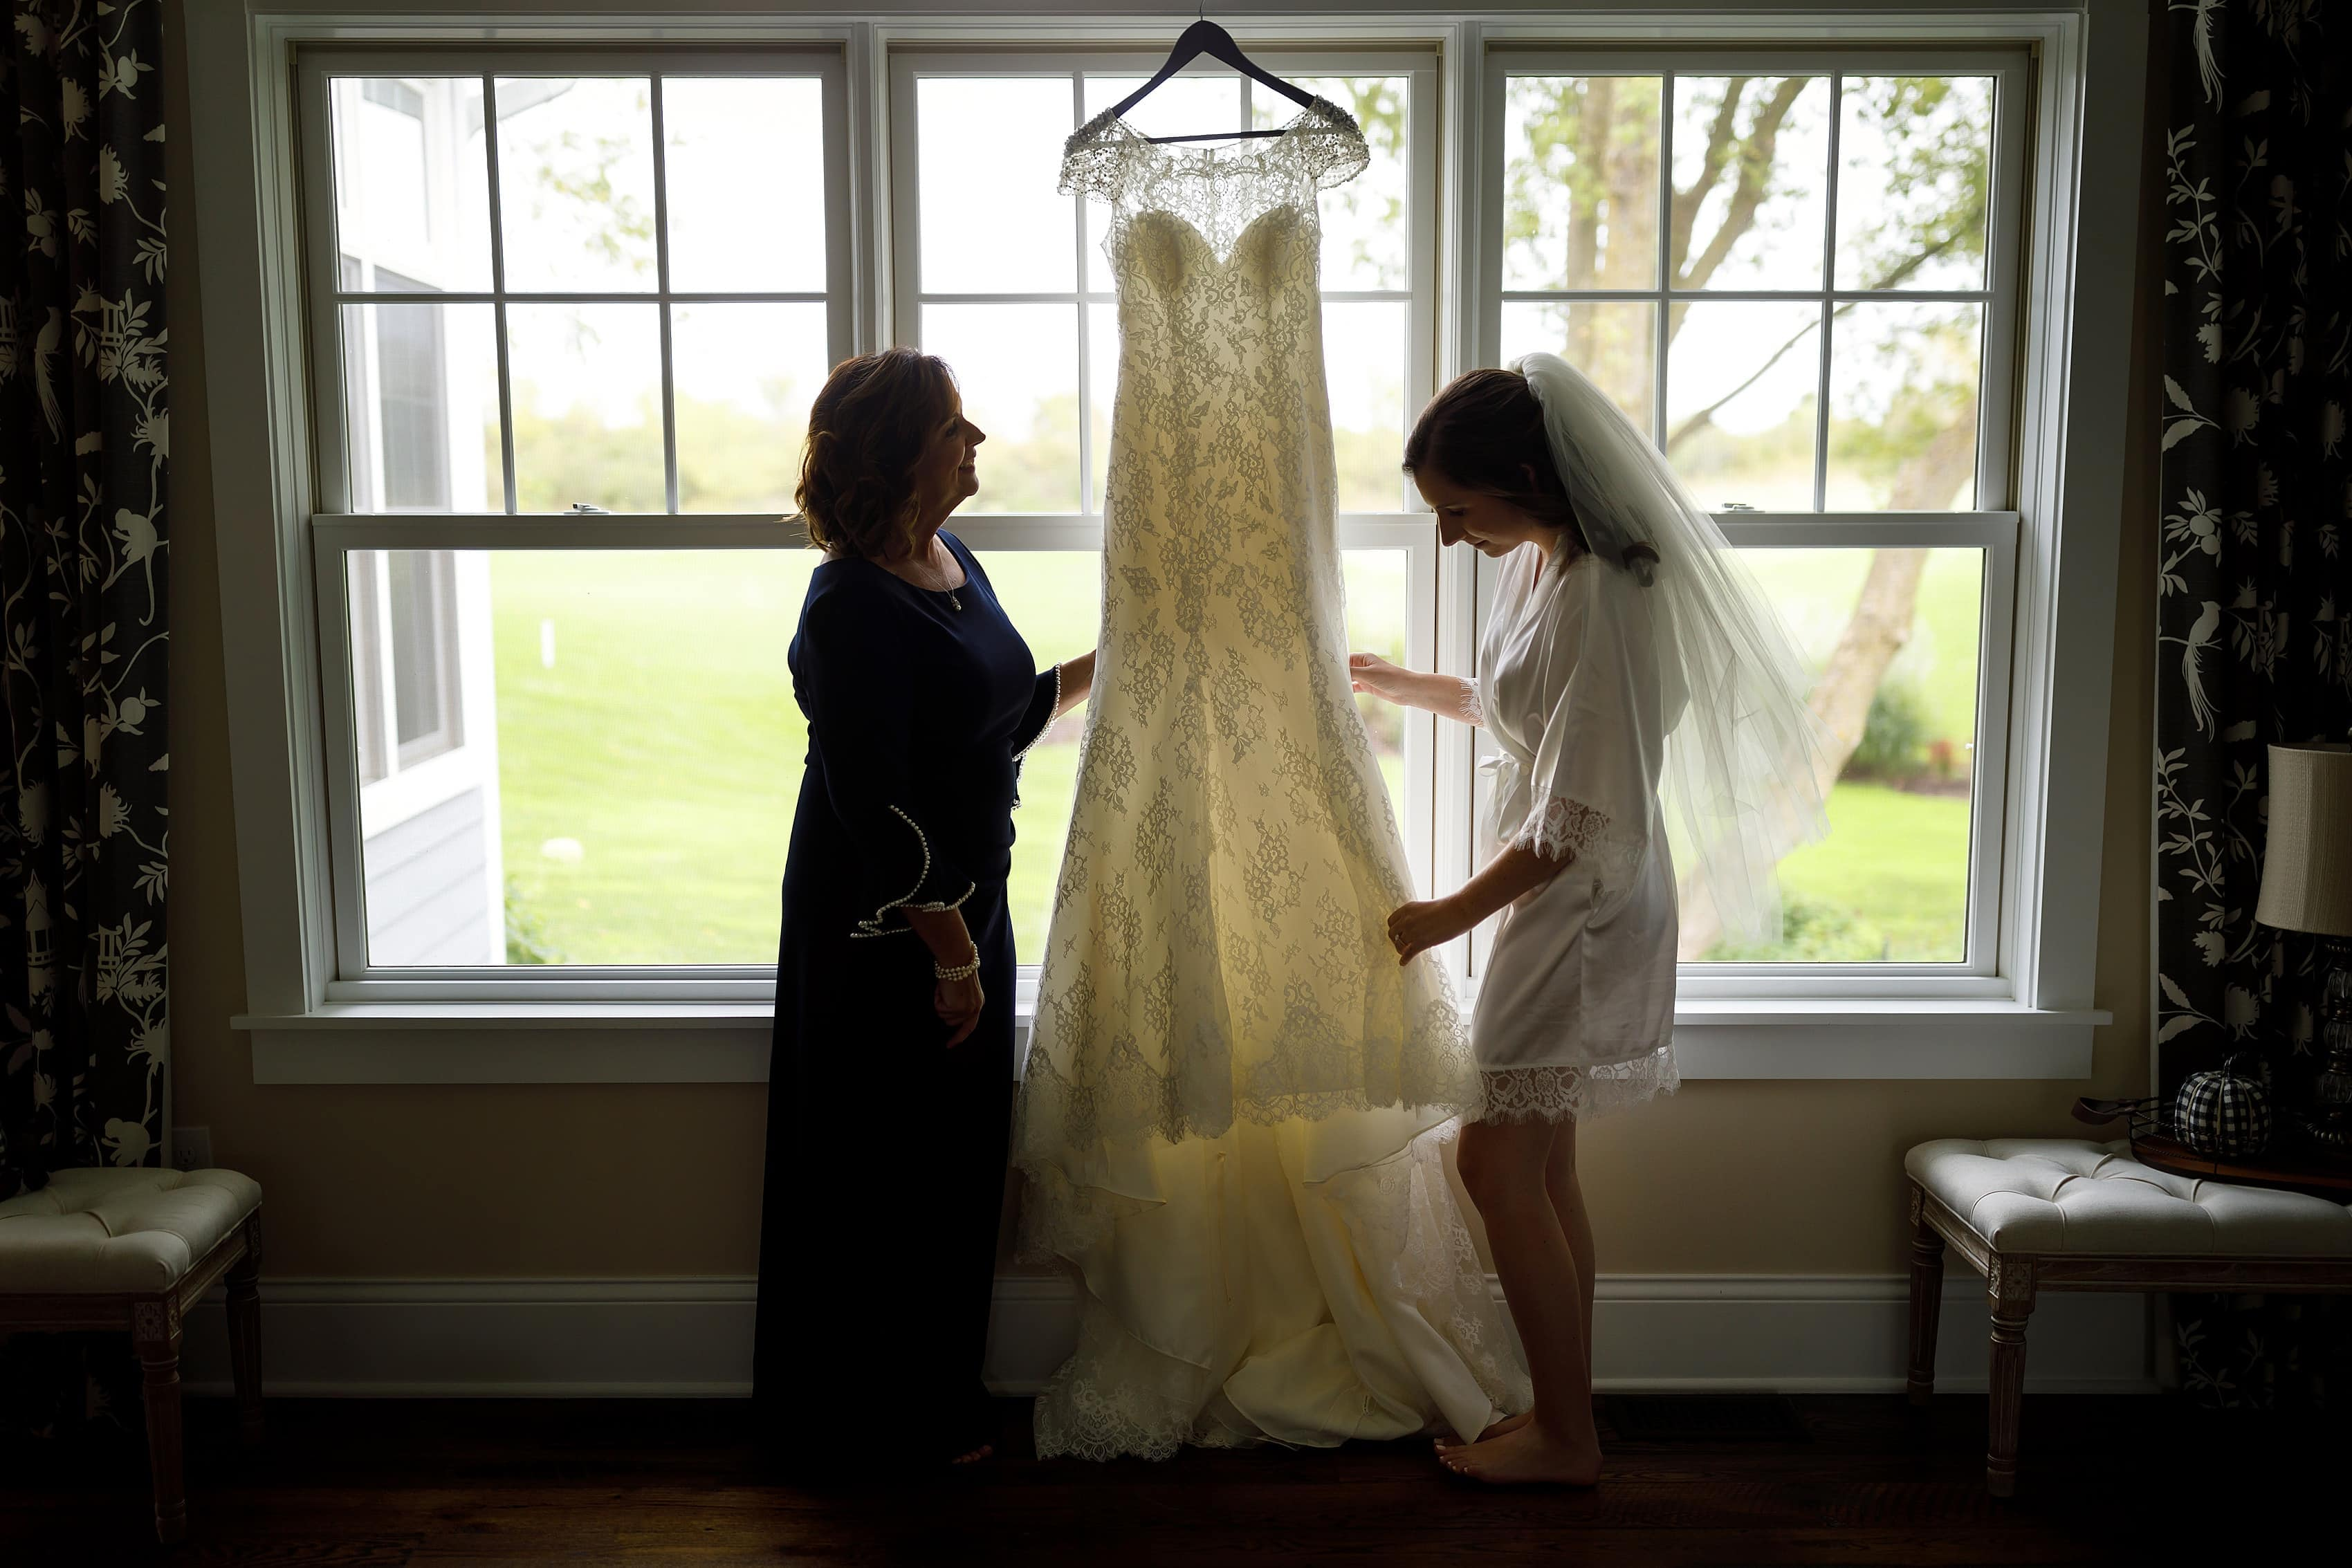 Bride and mom look at wedding dress while getting ready for wedding